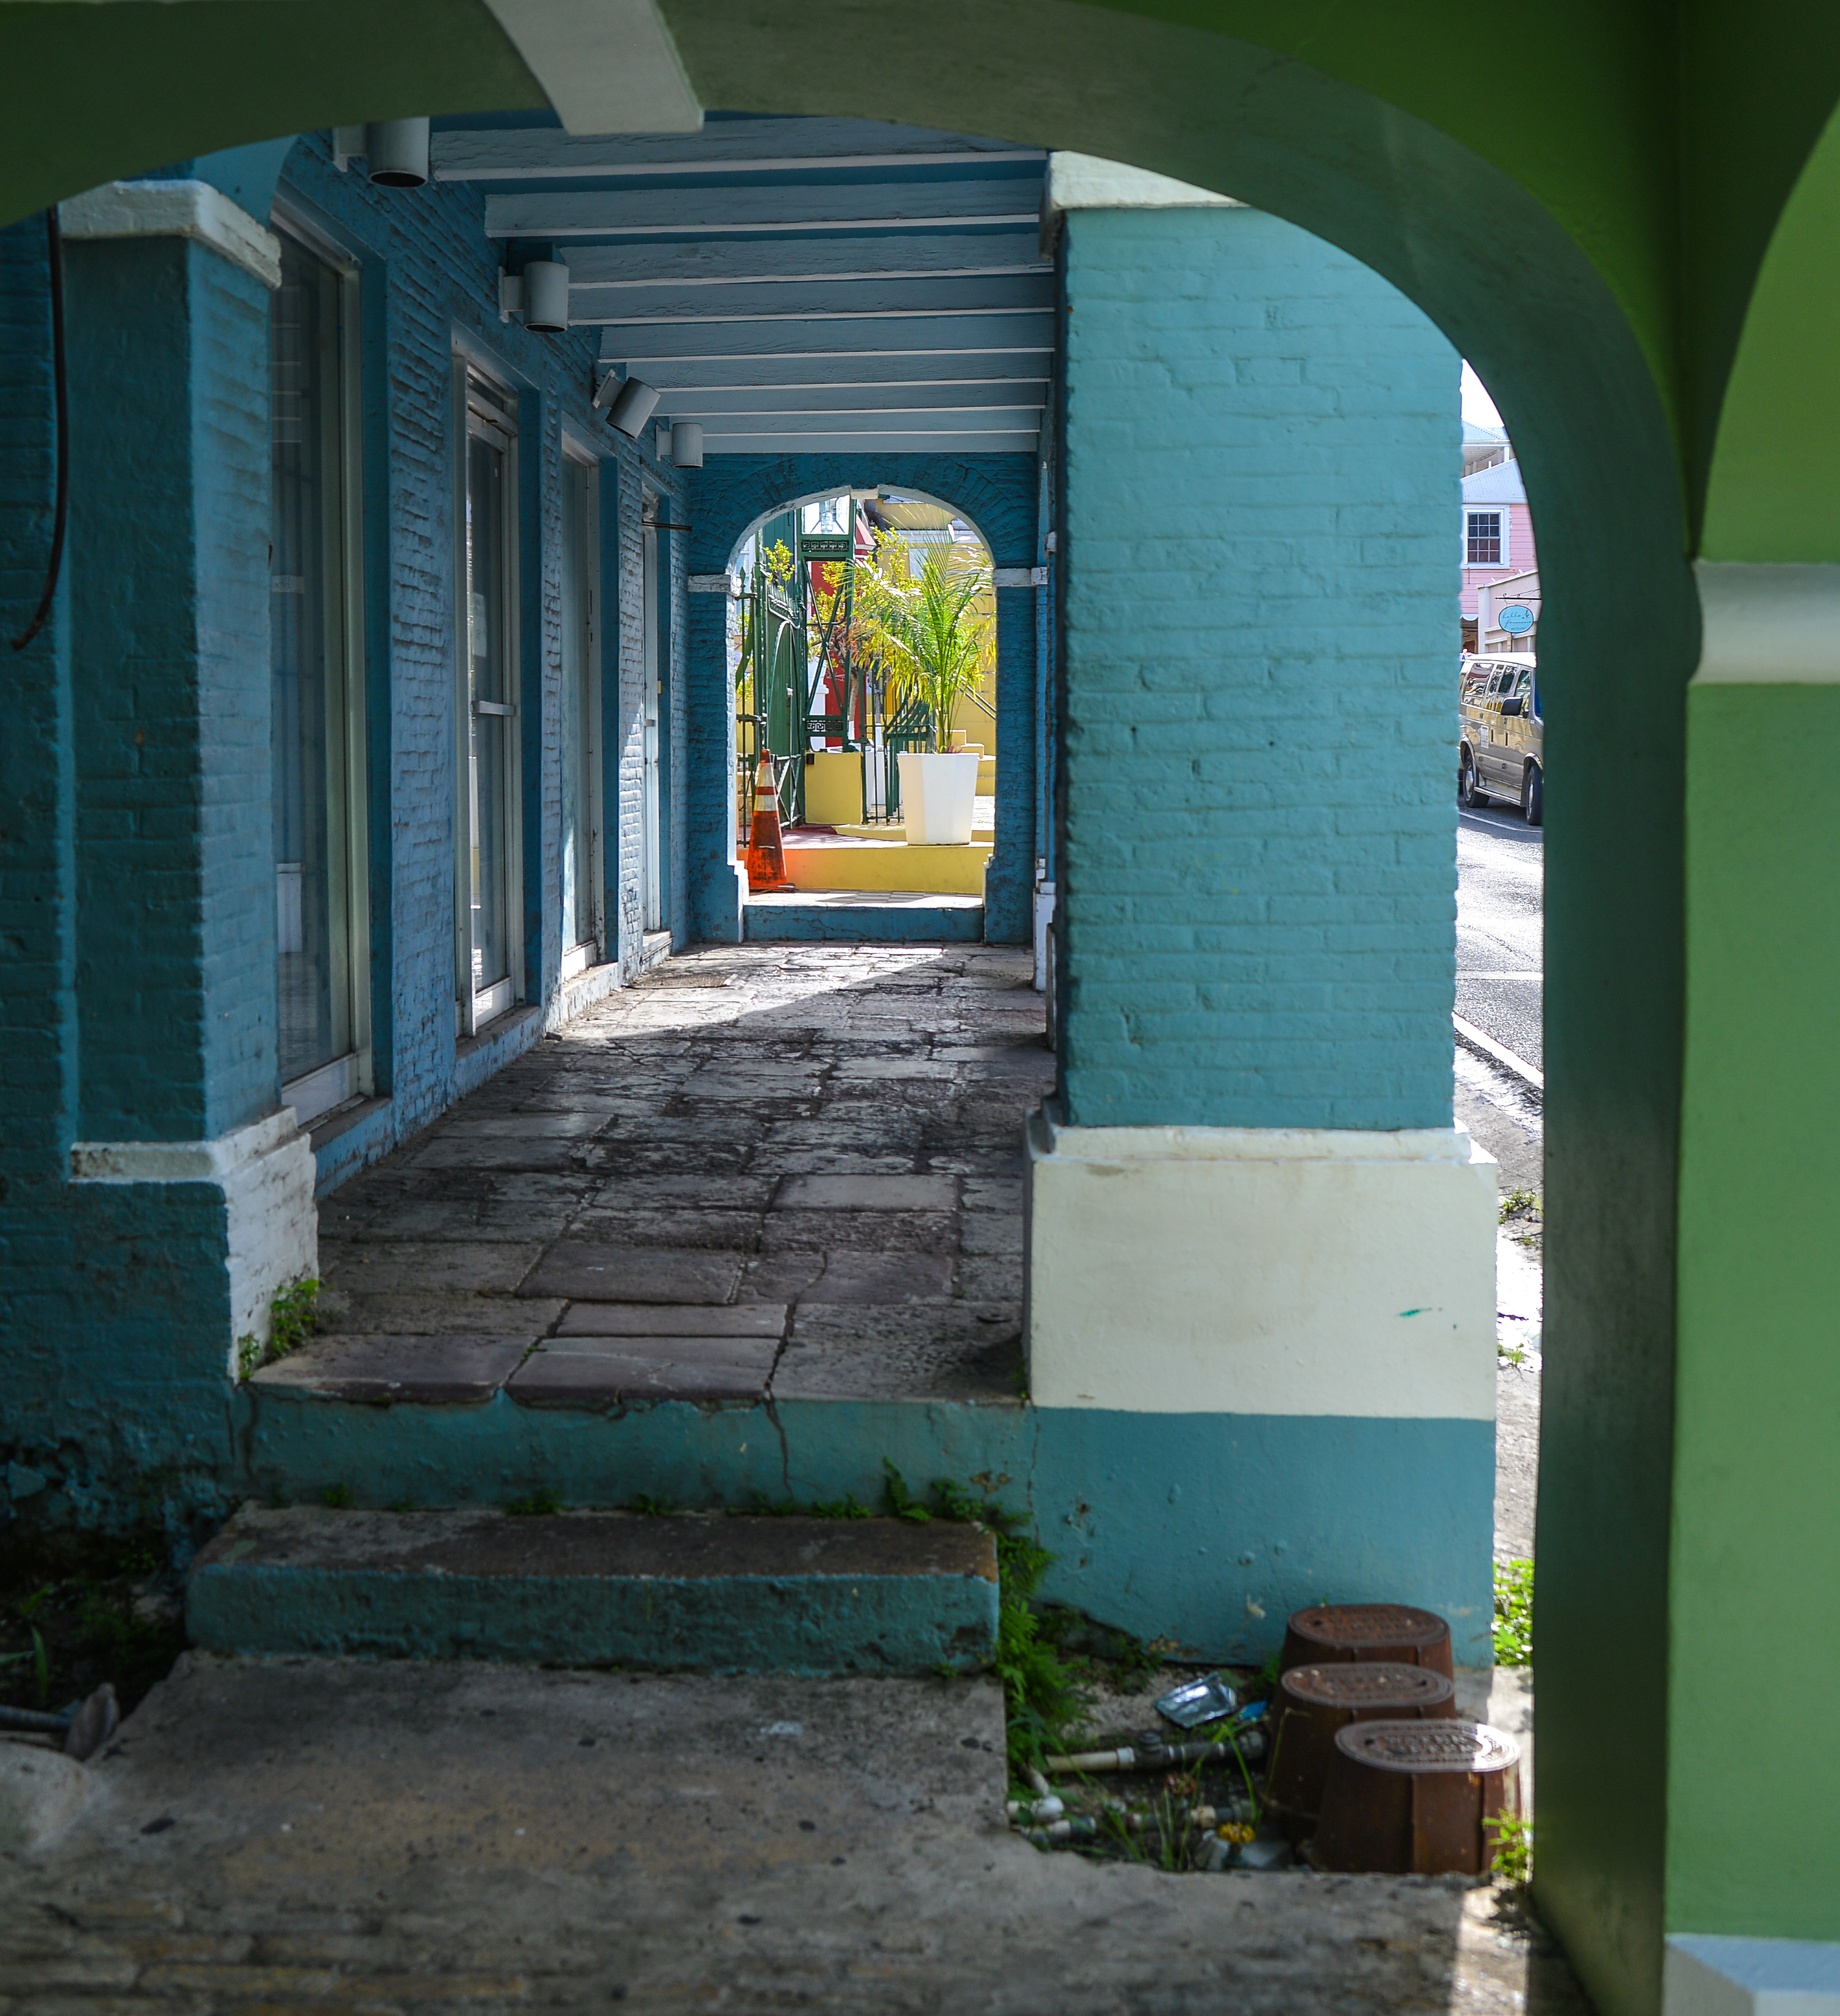 Danish archituecture prevails in Christiansted